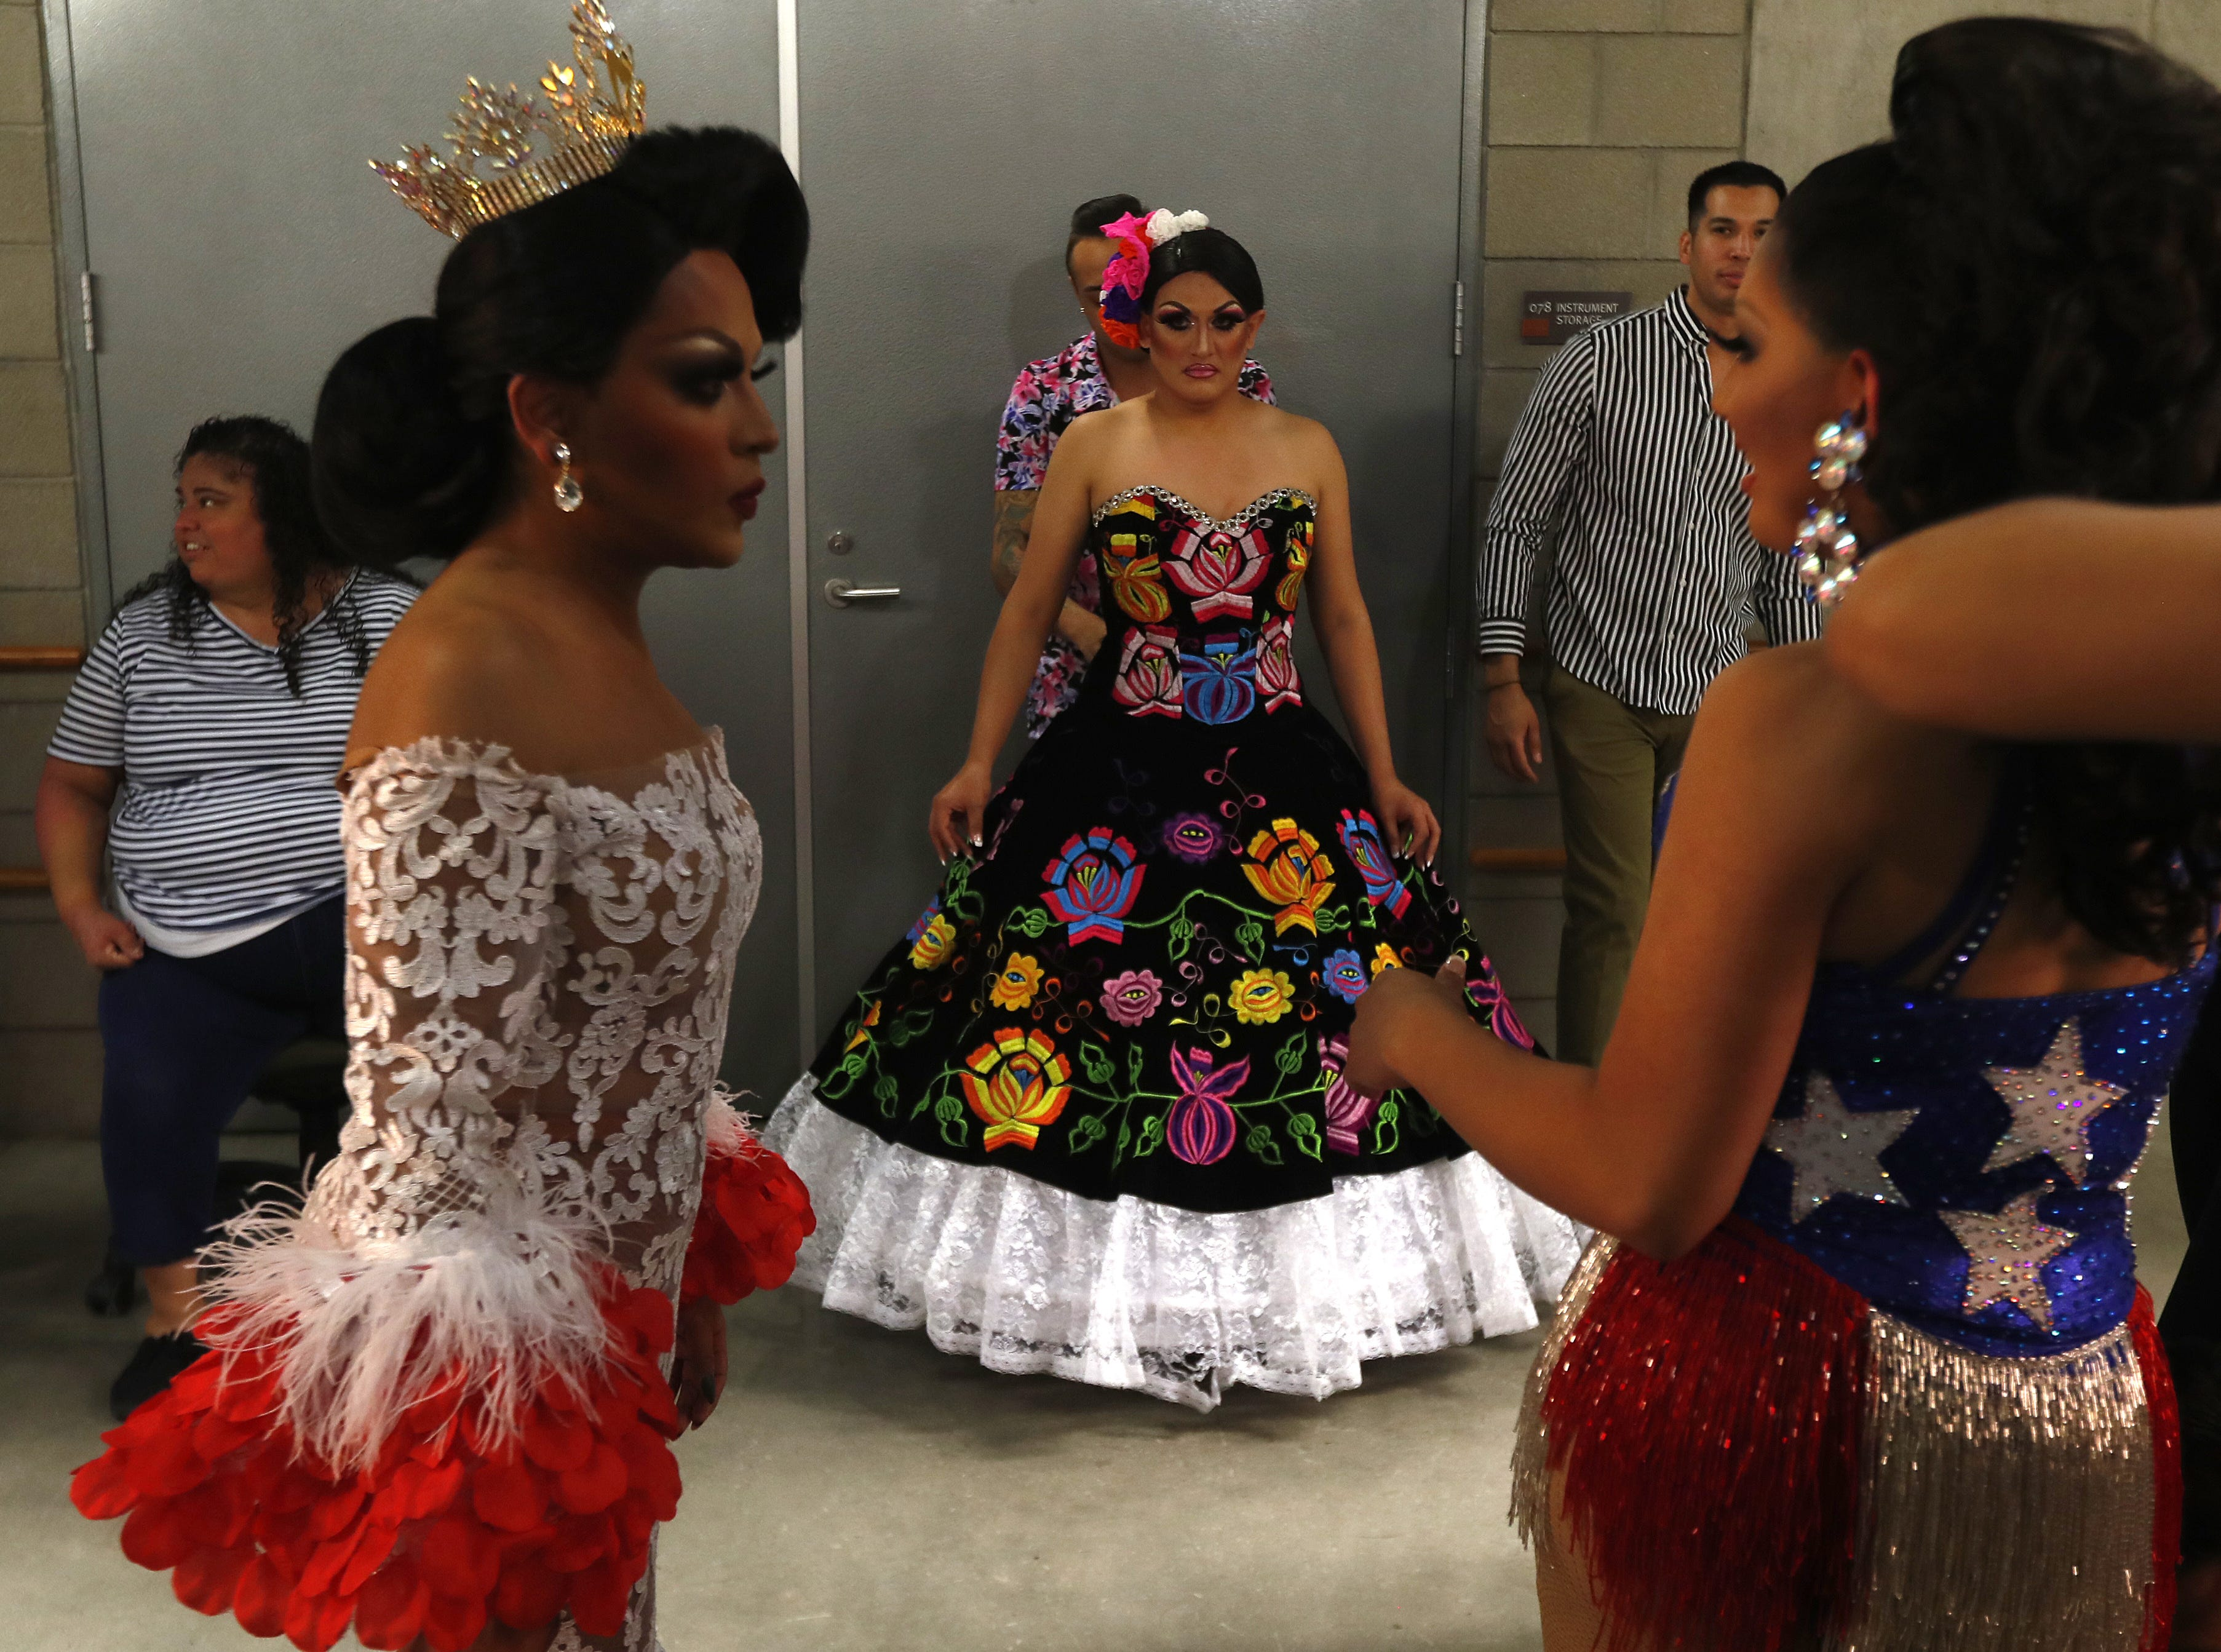 Miss Gay Arizona America 2018 Adriana Galliano (left) preps backstage with Jimena Cavalli (center) and Sicarya (right) during the Miss Gay Arizona America pageant 2019 at Tempe Center for the Arts on May 11, 2019.